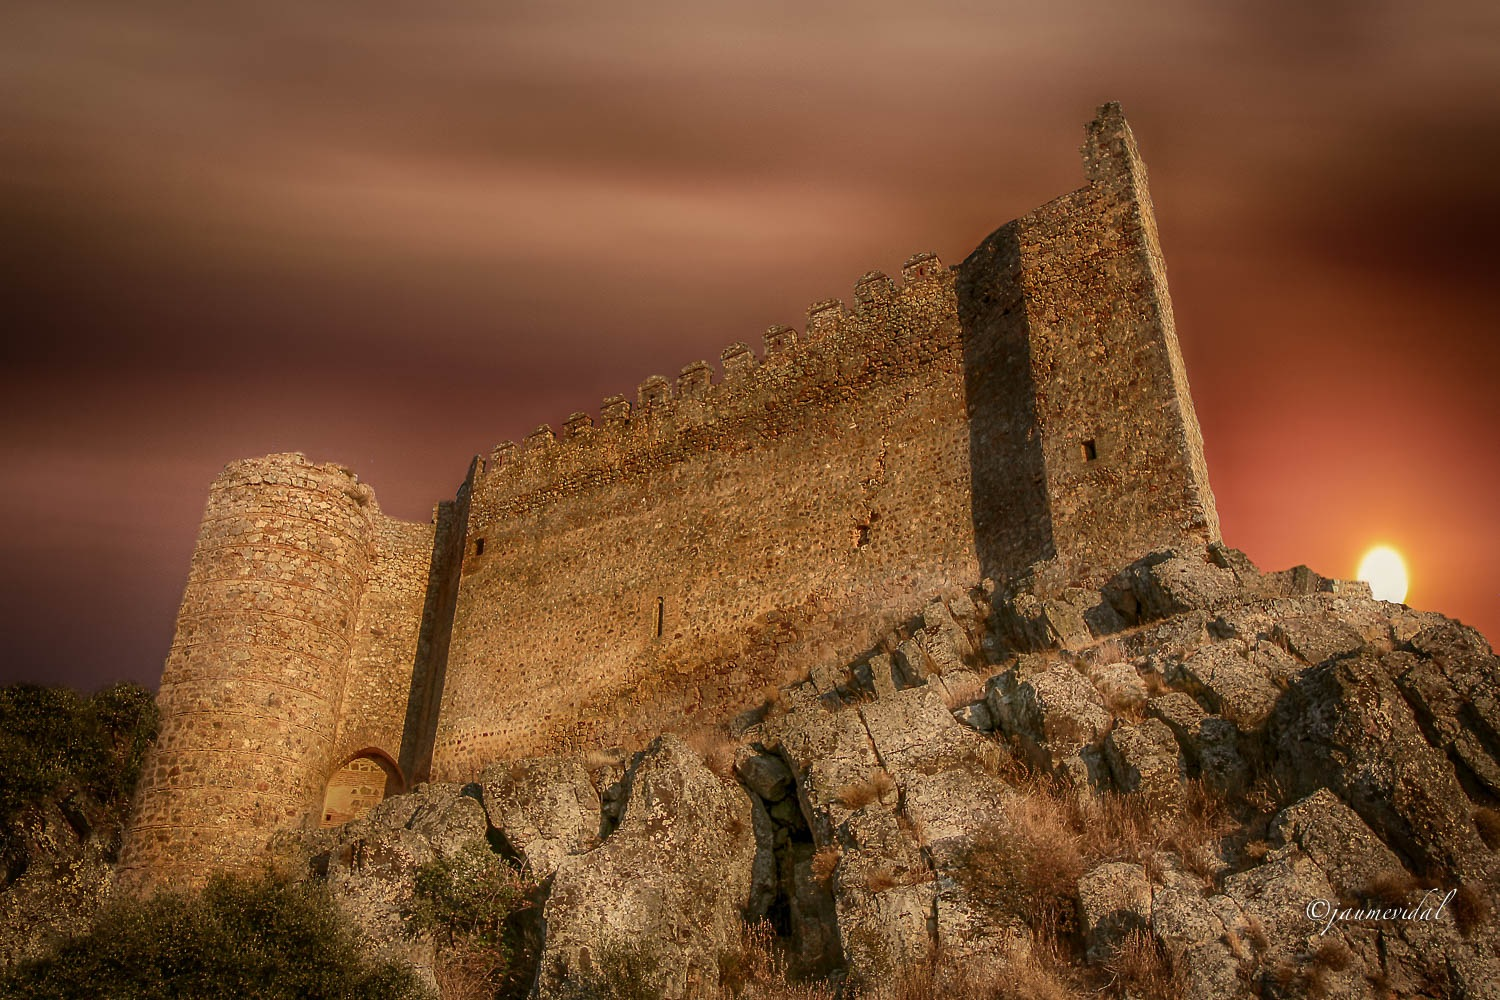 Sunset at the back of the castle by JaumeVidal